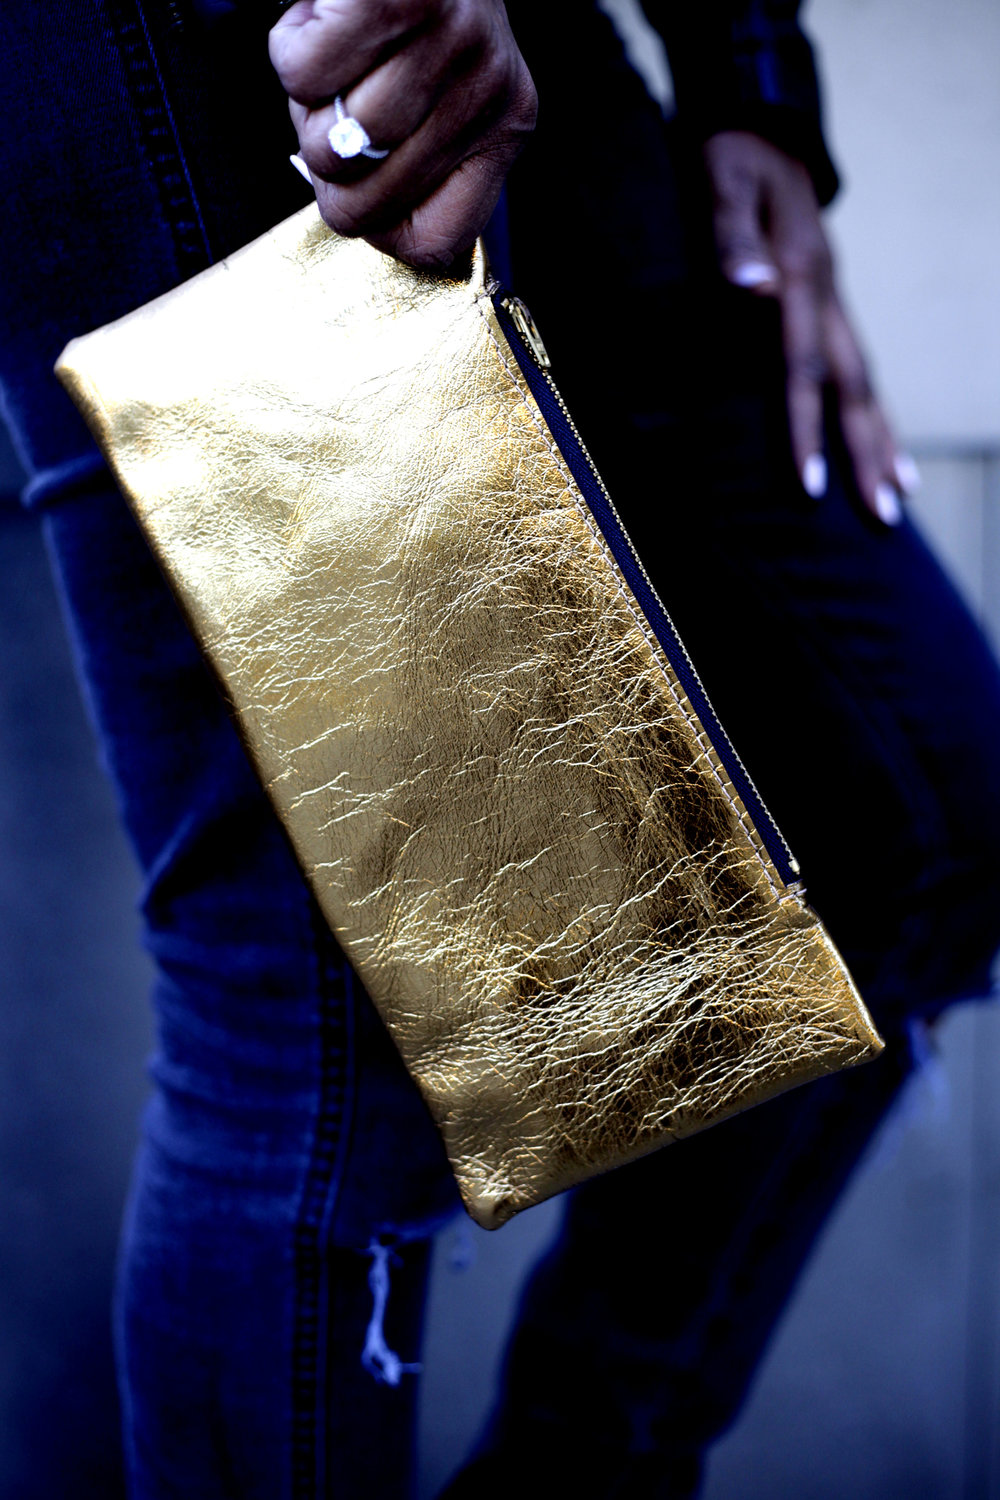 Aura Clutch - 24kt. Gold Lamb Leather Clutch. Pull zipper closure. Gold Element: FireGold Properties:Intuition. Divination. Healing. Wealth. Magical Power.